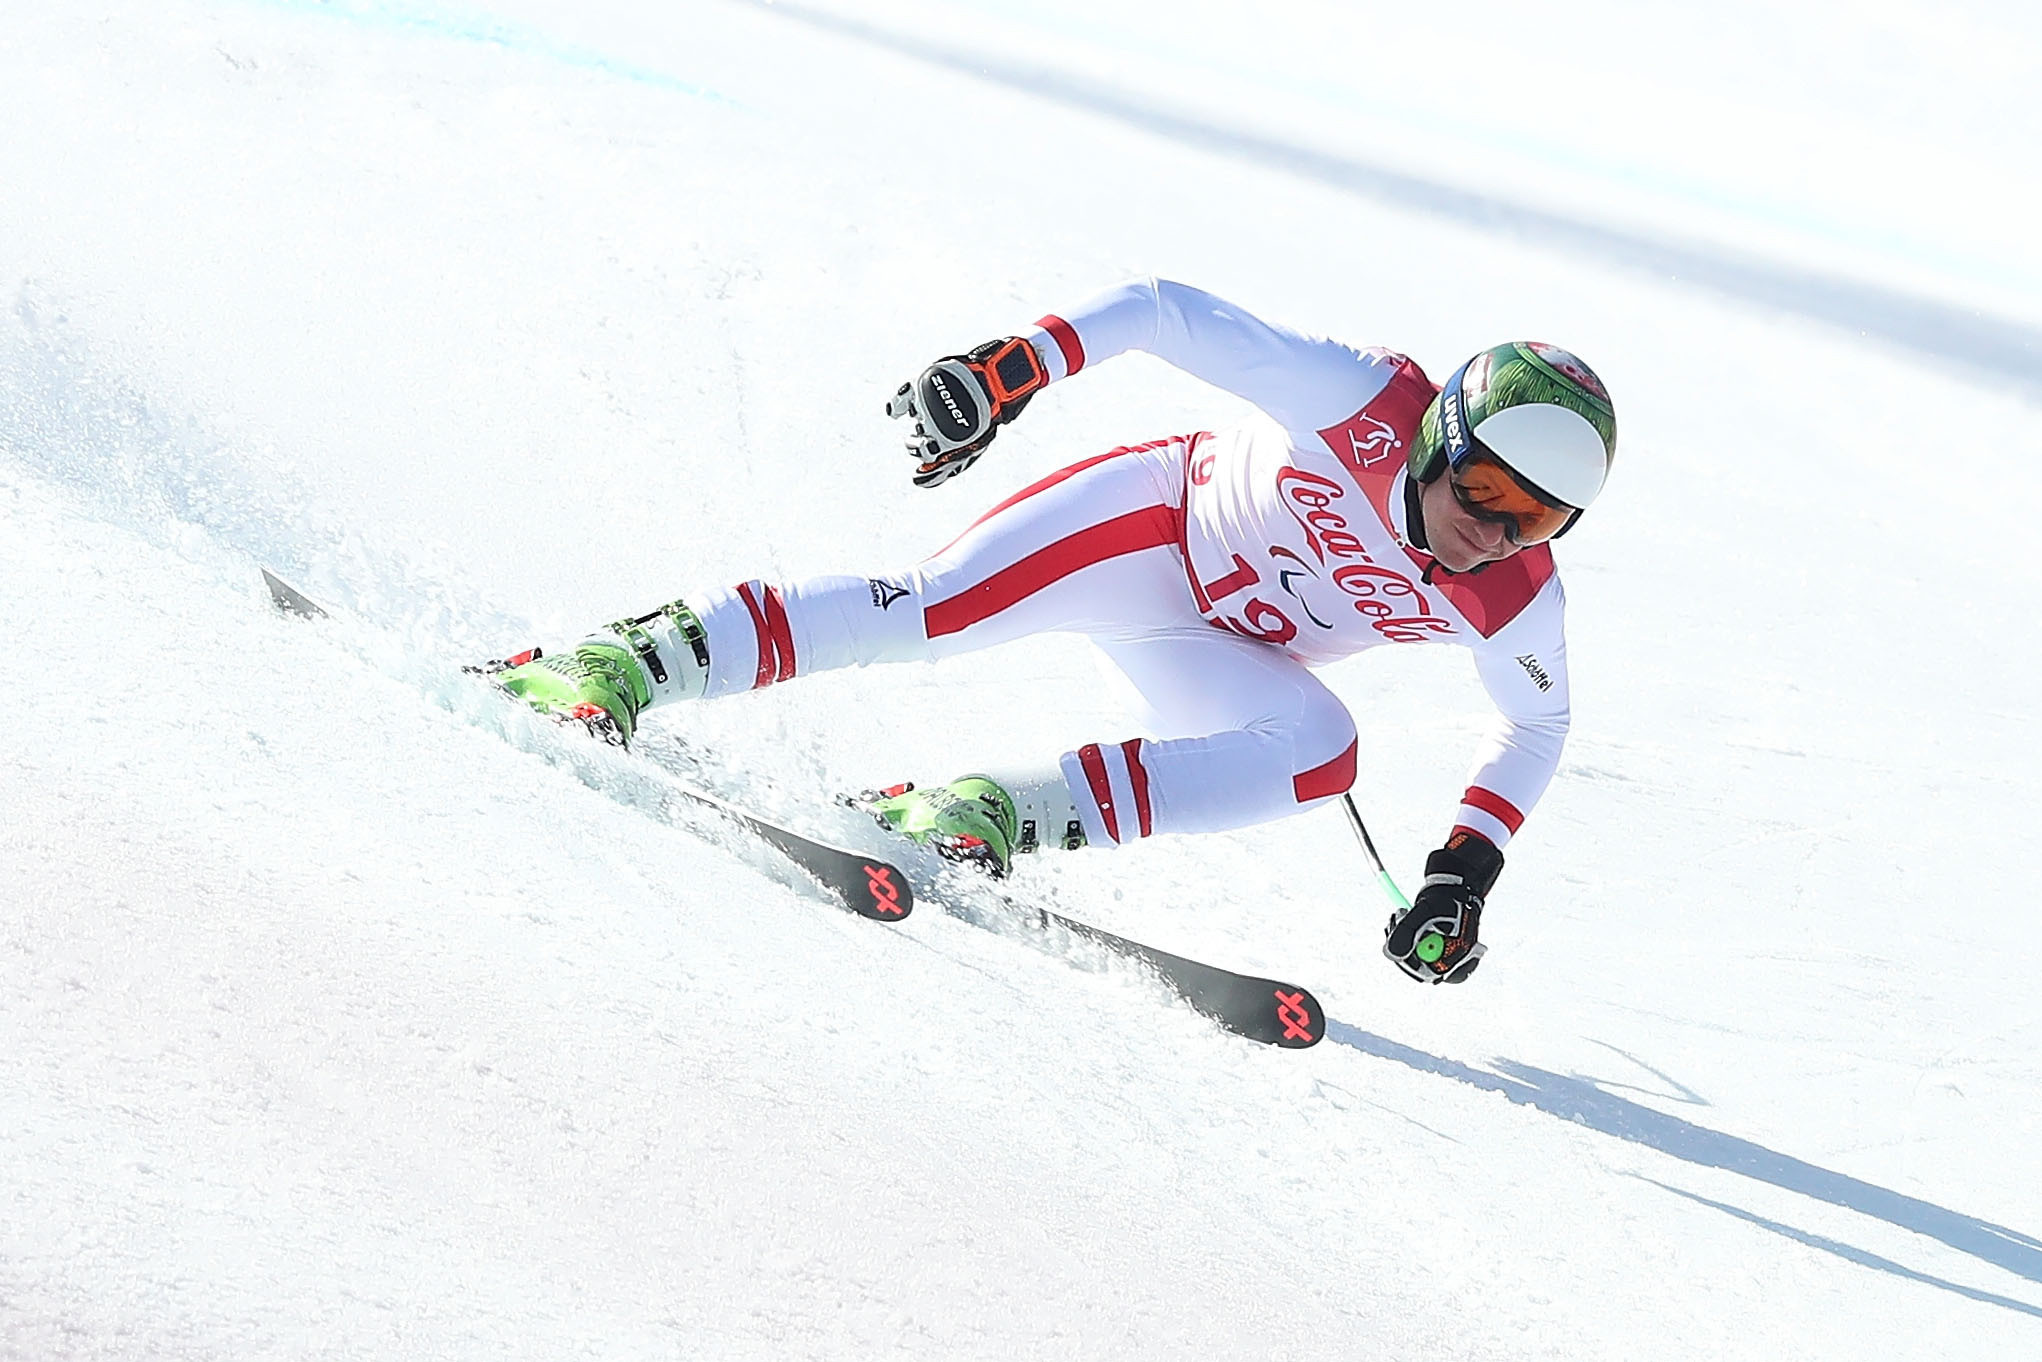 Salcher back to winning ways with downhill gold at World Alpine Skiing World Cup